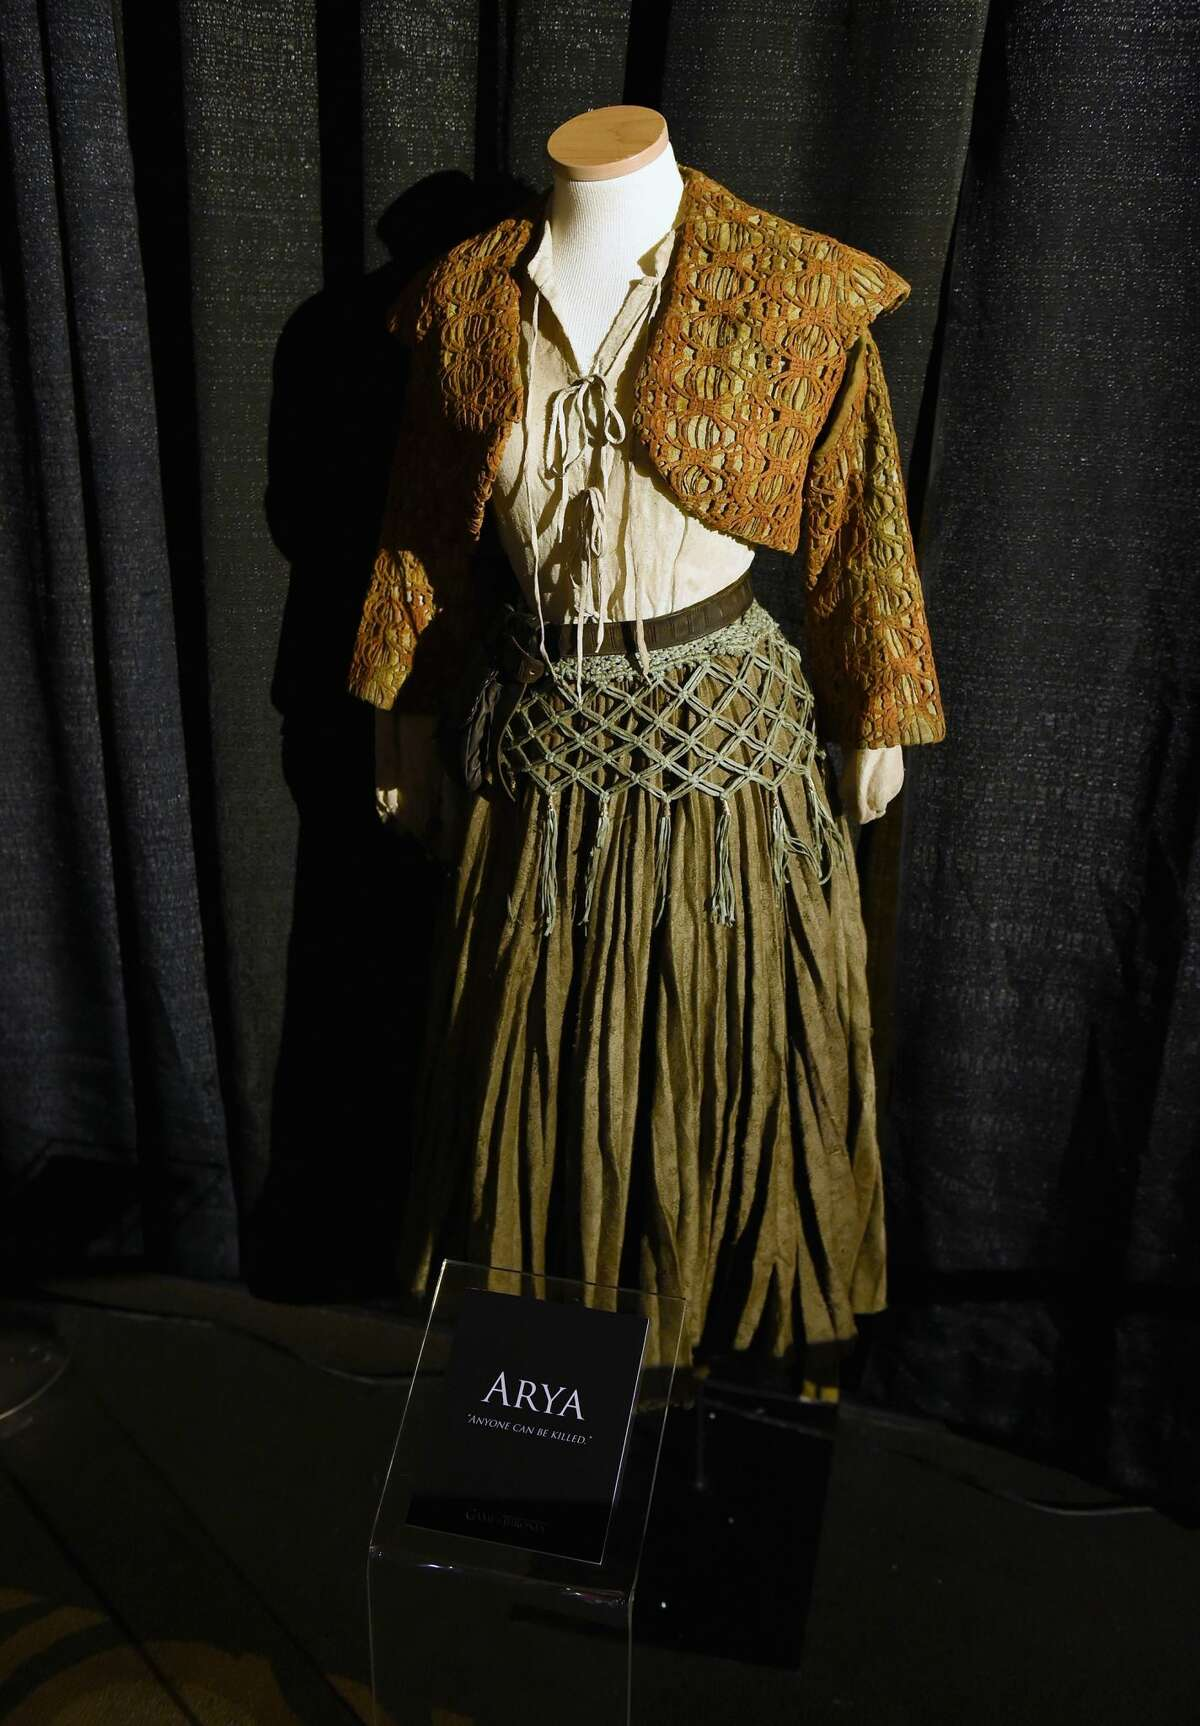 LOS ANGELES, CA - AUGUST 08: An exclusive costume on display during the announcement of the Game of Thrones® Live Concert Experience featuring composer Ramin Djawadi at the Hollywood Palladium on August 8, 2016 in Los Angeles, California. (Photo by Kevin Winter/Getty Images for Live nation Entertainment )